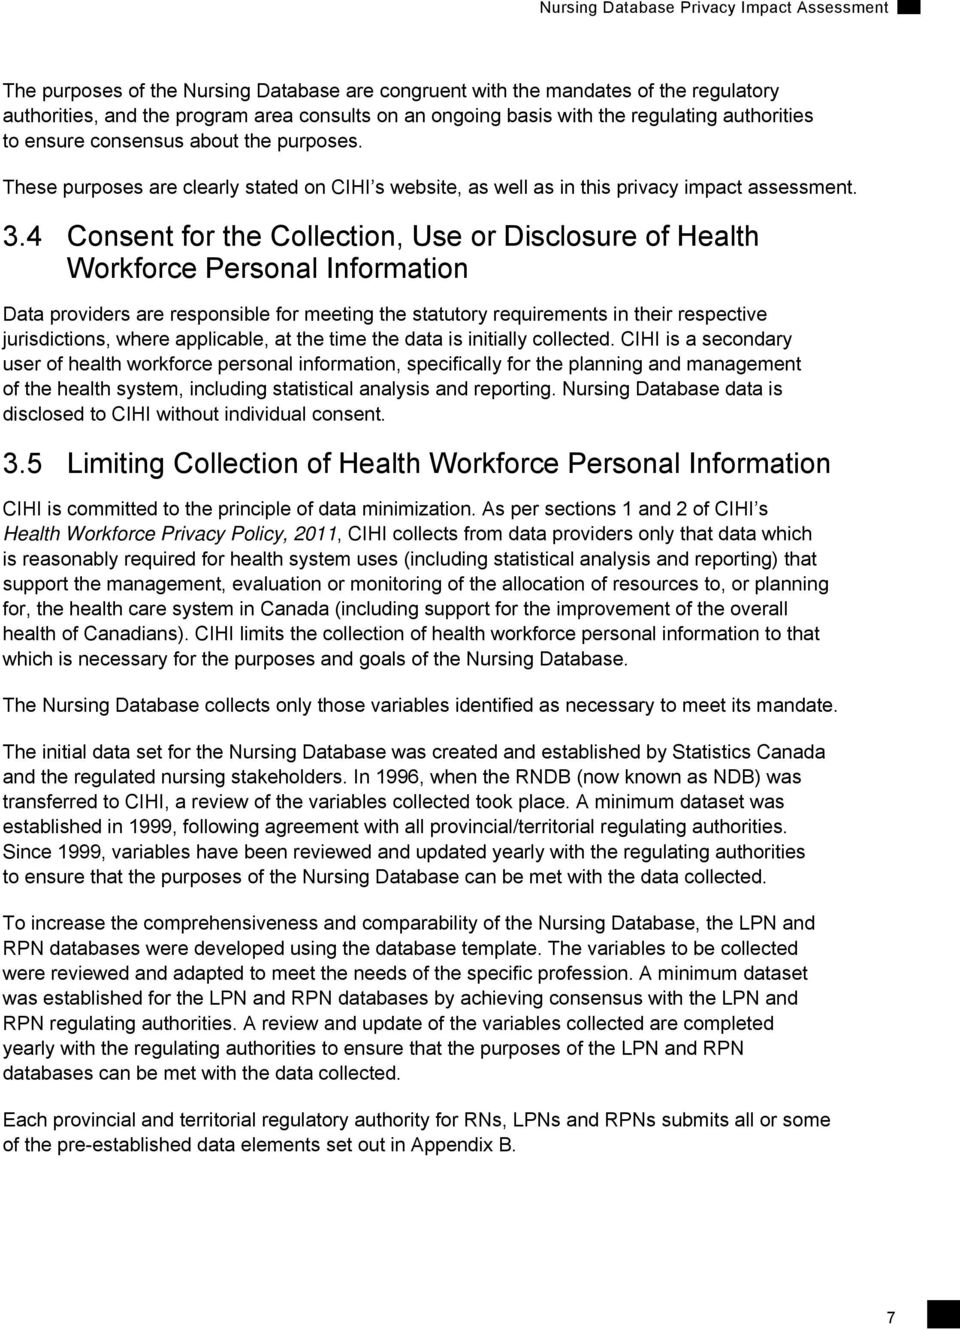 4 Consent for the Collection, Use or Disclosure of Health Workforce Personal Information Data providers are responsible for meeting the statutory requirements in their respective jurisdictions, where